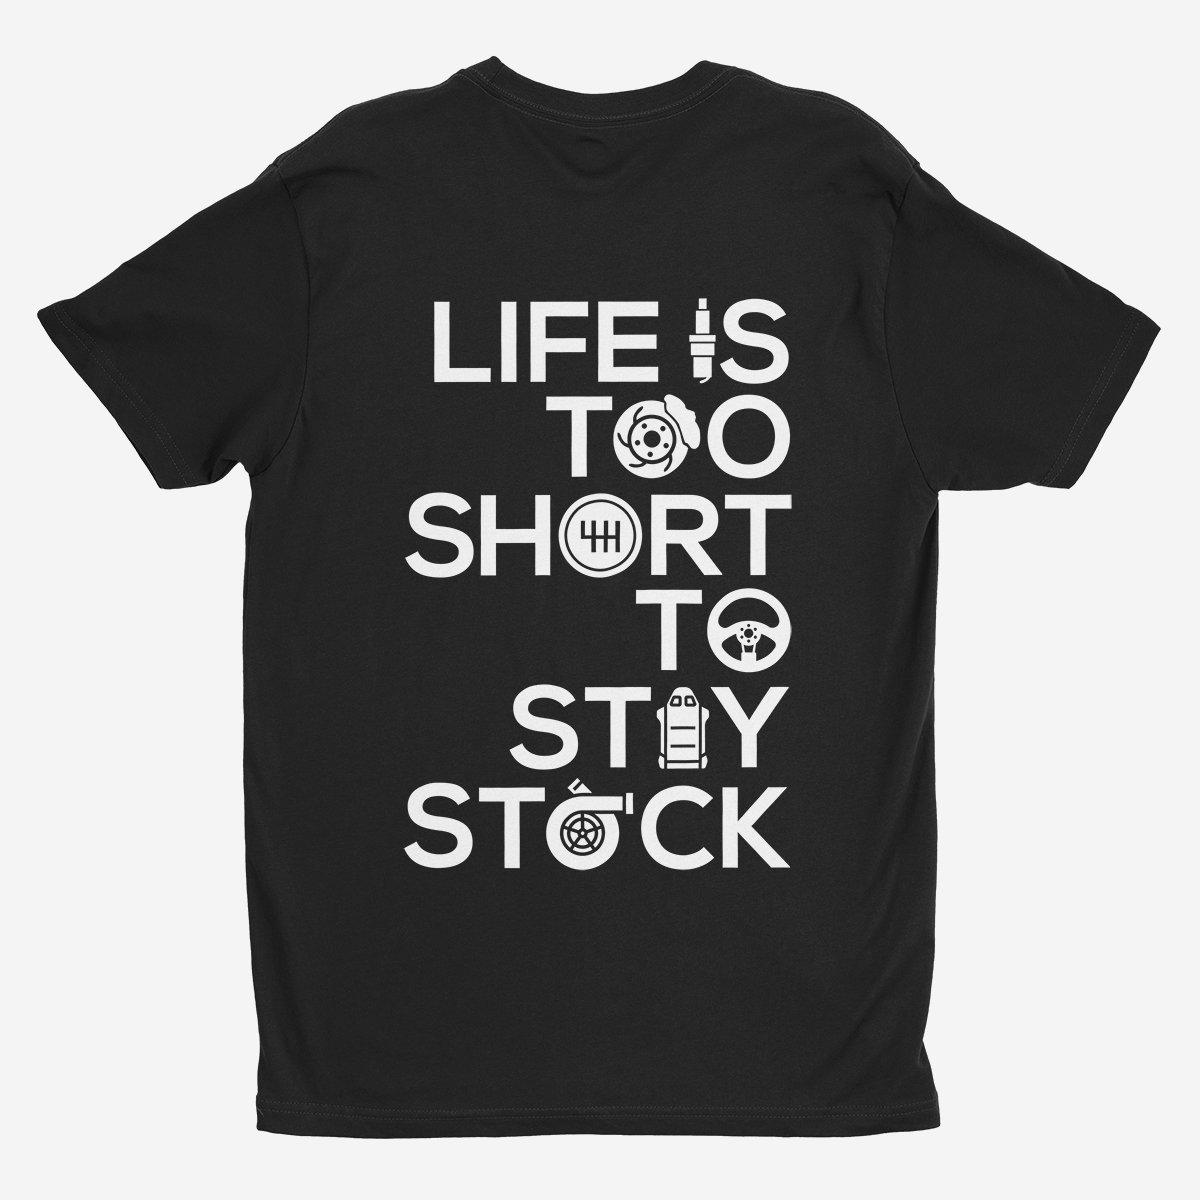 Life Is Too Short To Stay Stock - Car T-Shirt - Black.